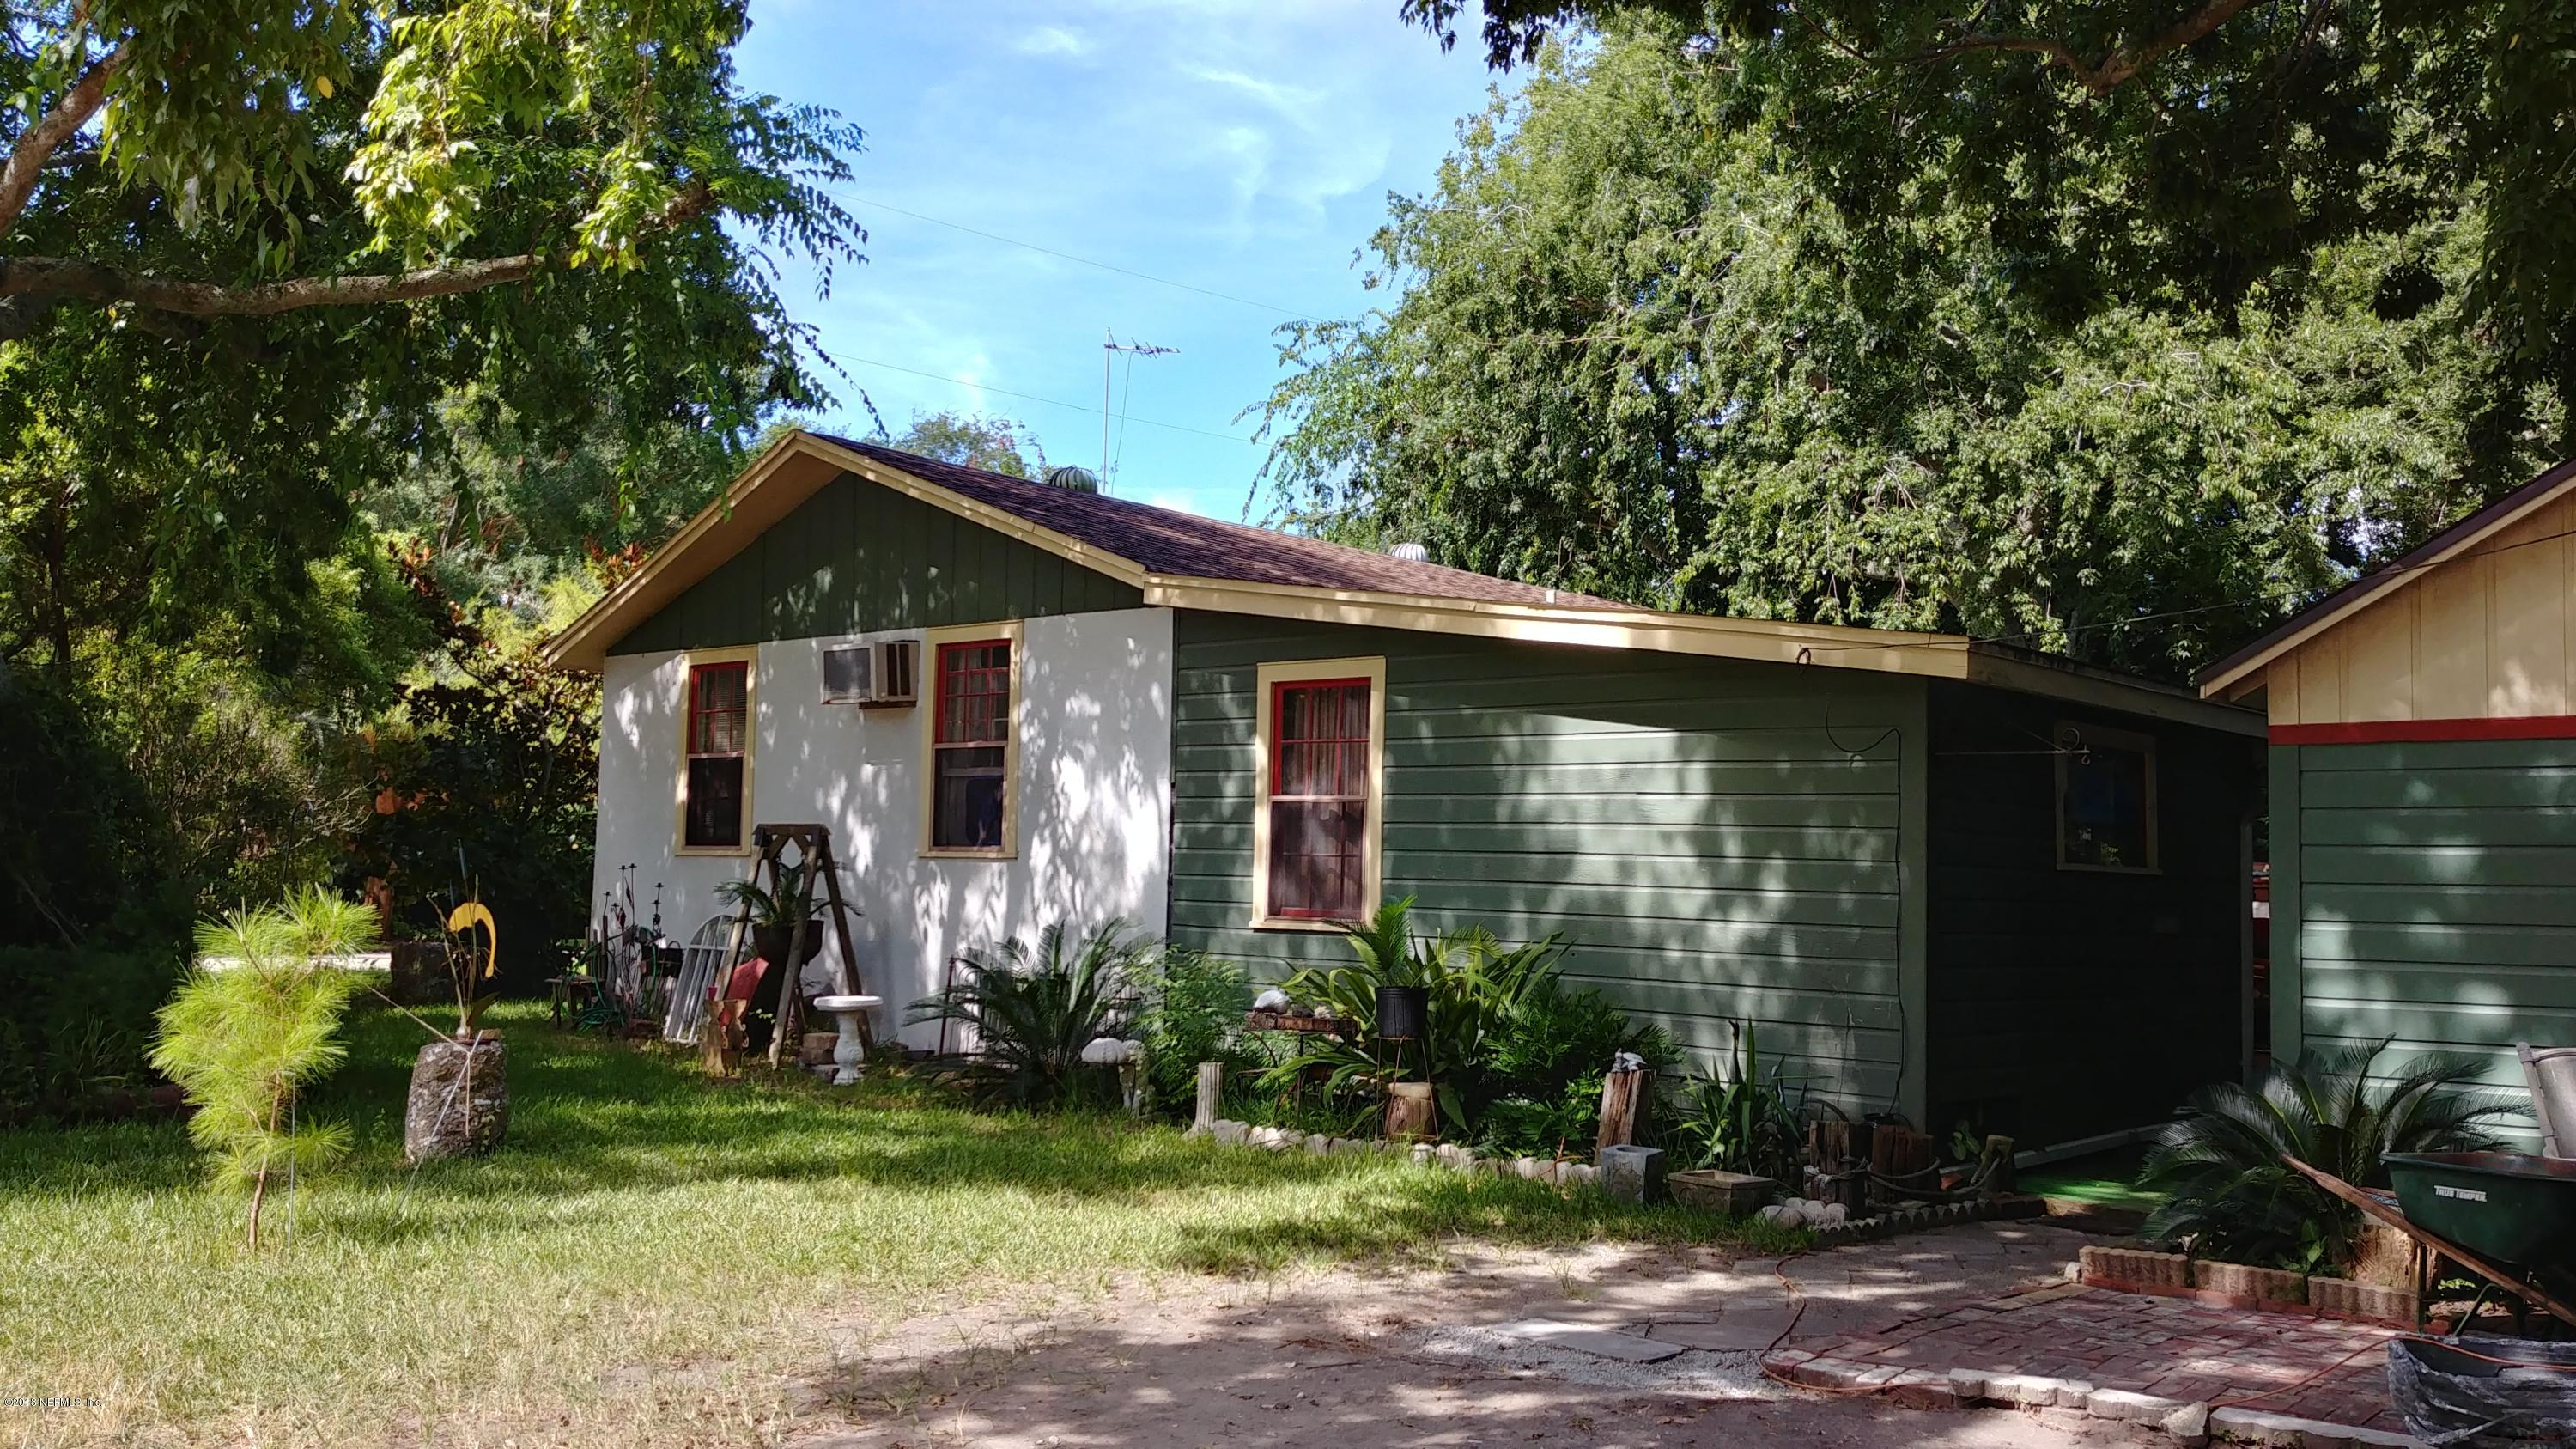 205 AMELIA ST OLD TOWN, FERNANDINA BEACH, FLORIDA 32034, 2 Bedrooms Bedrooms, ,1 BathroomBathrooms,Residential - single family,For sale,AMELIA ST OLD TOWN,953347